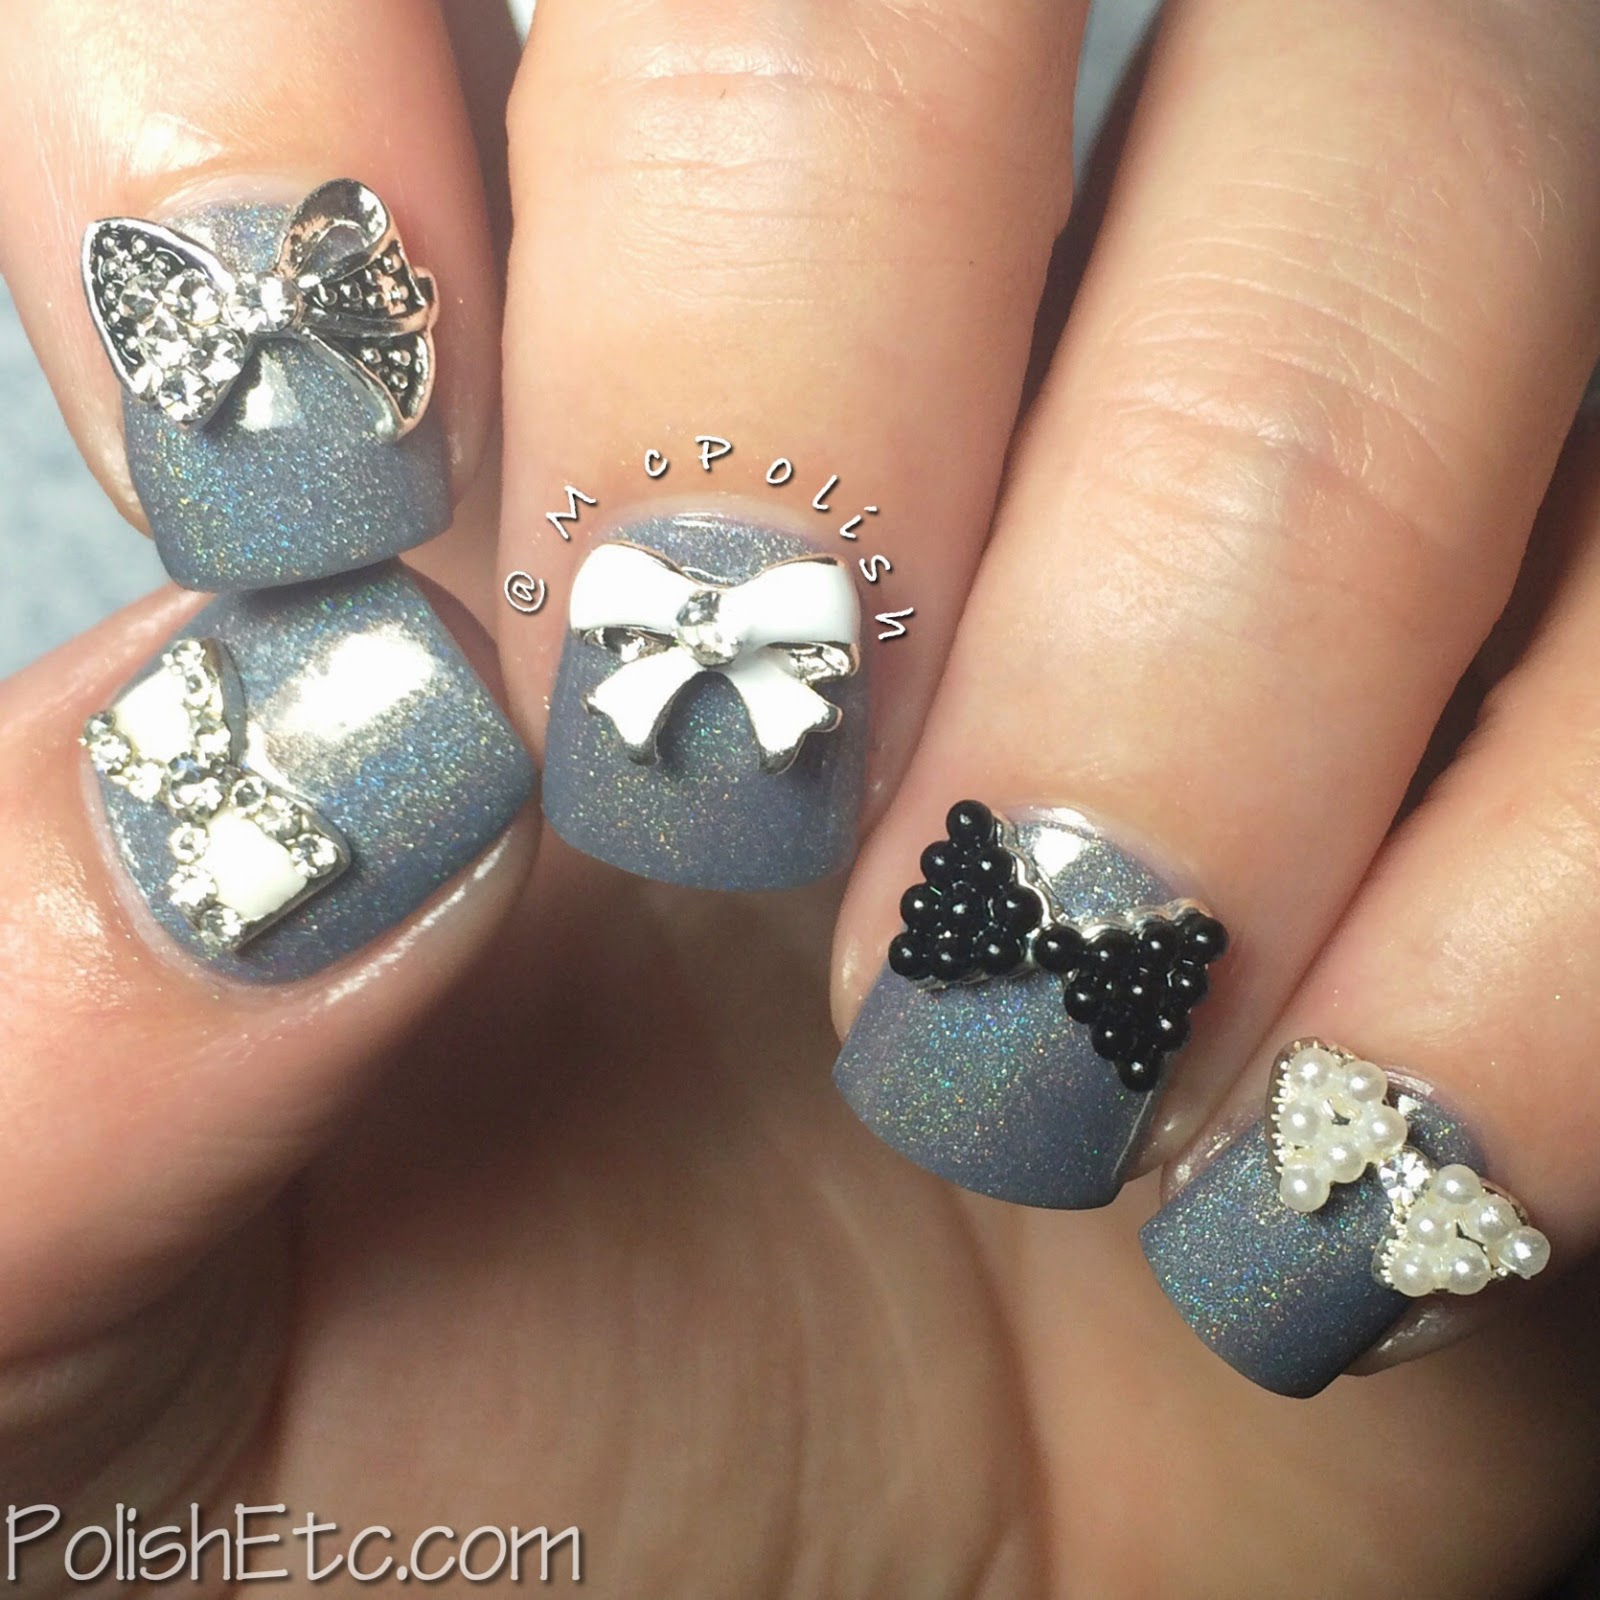 #31dc2014 - 31 Day Nail Art Challenge 2014 by McPolish - B&W